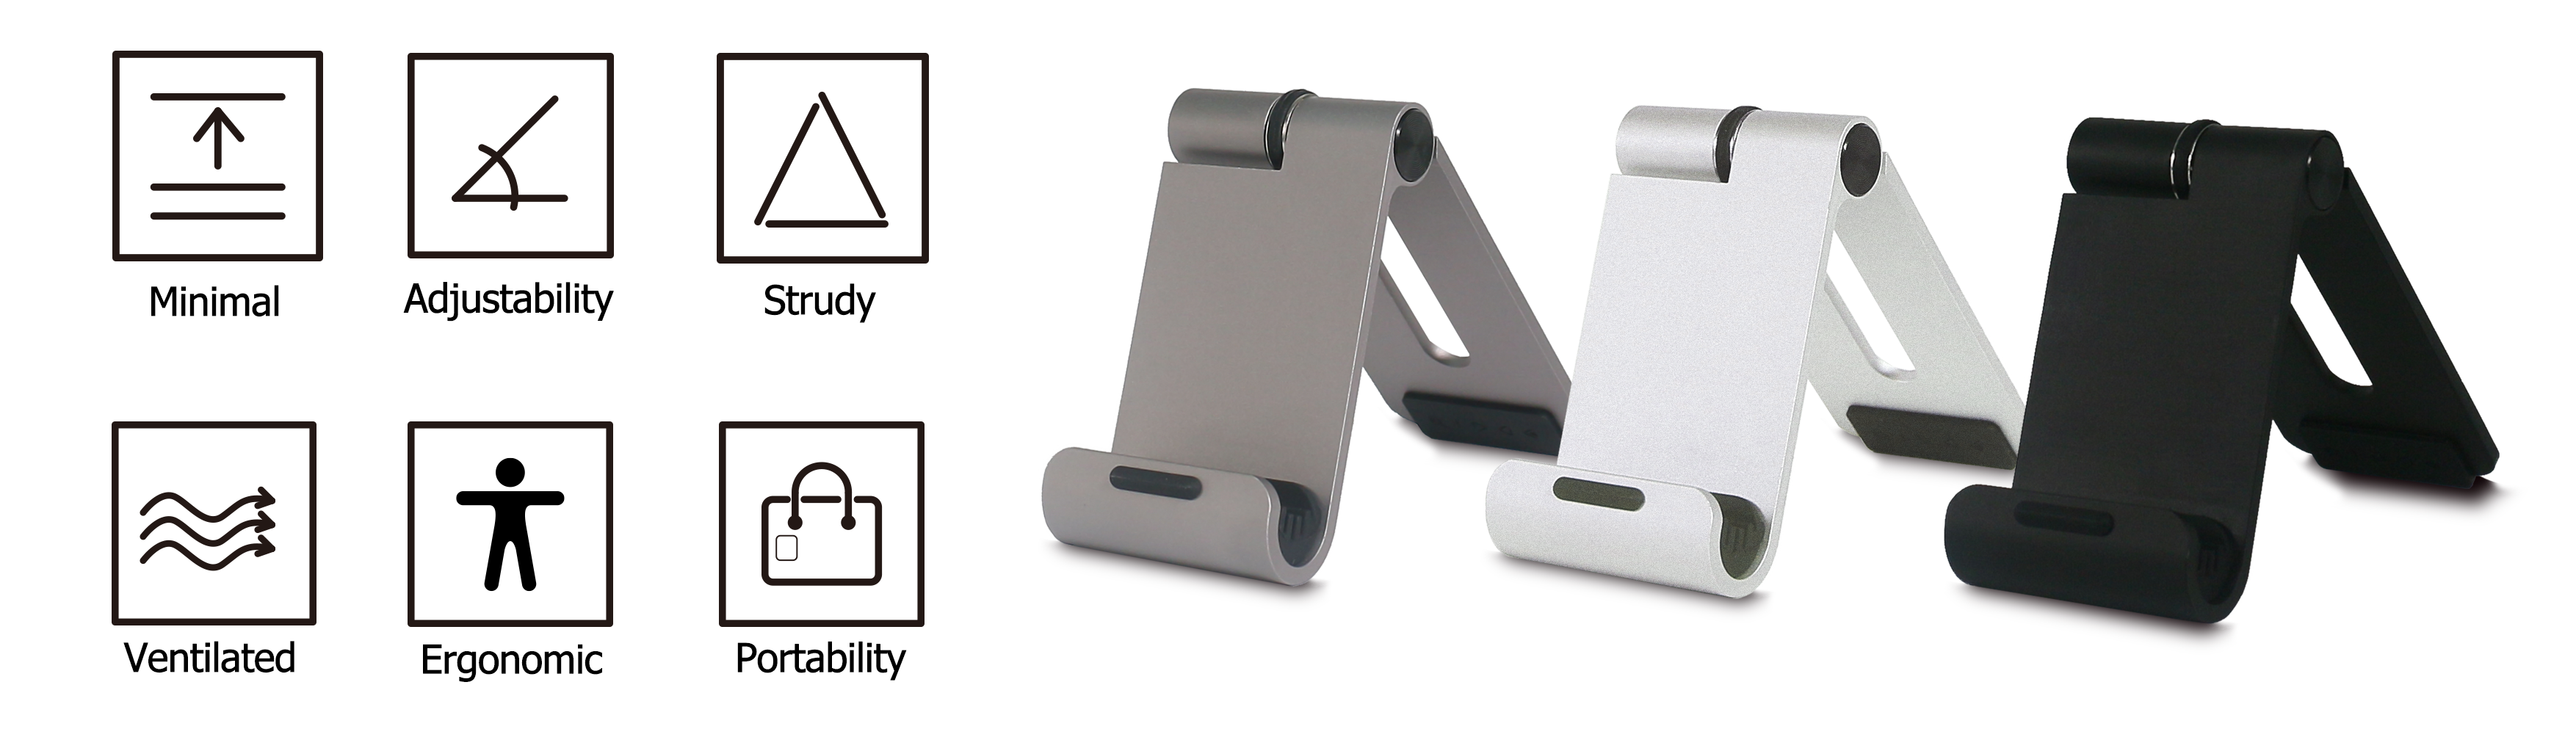 portable adjustable stand for phone